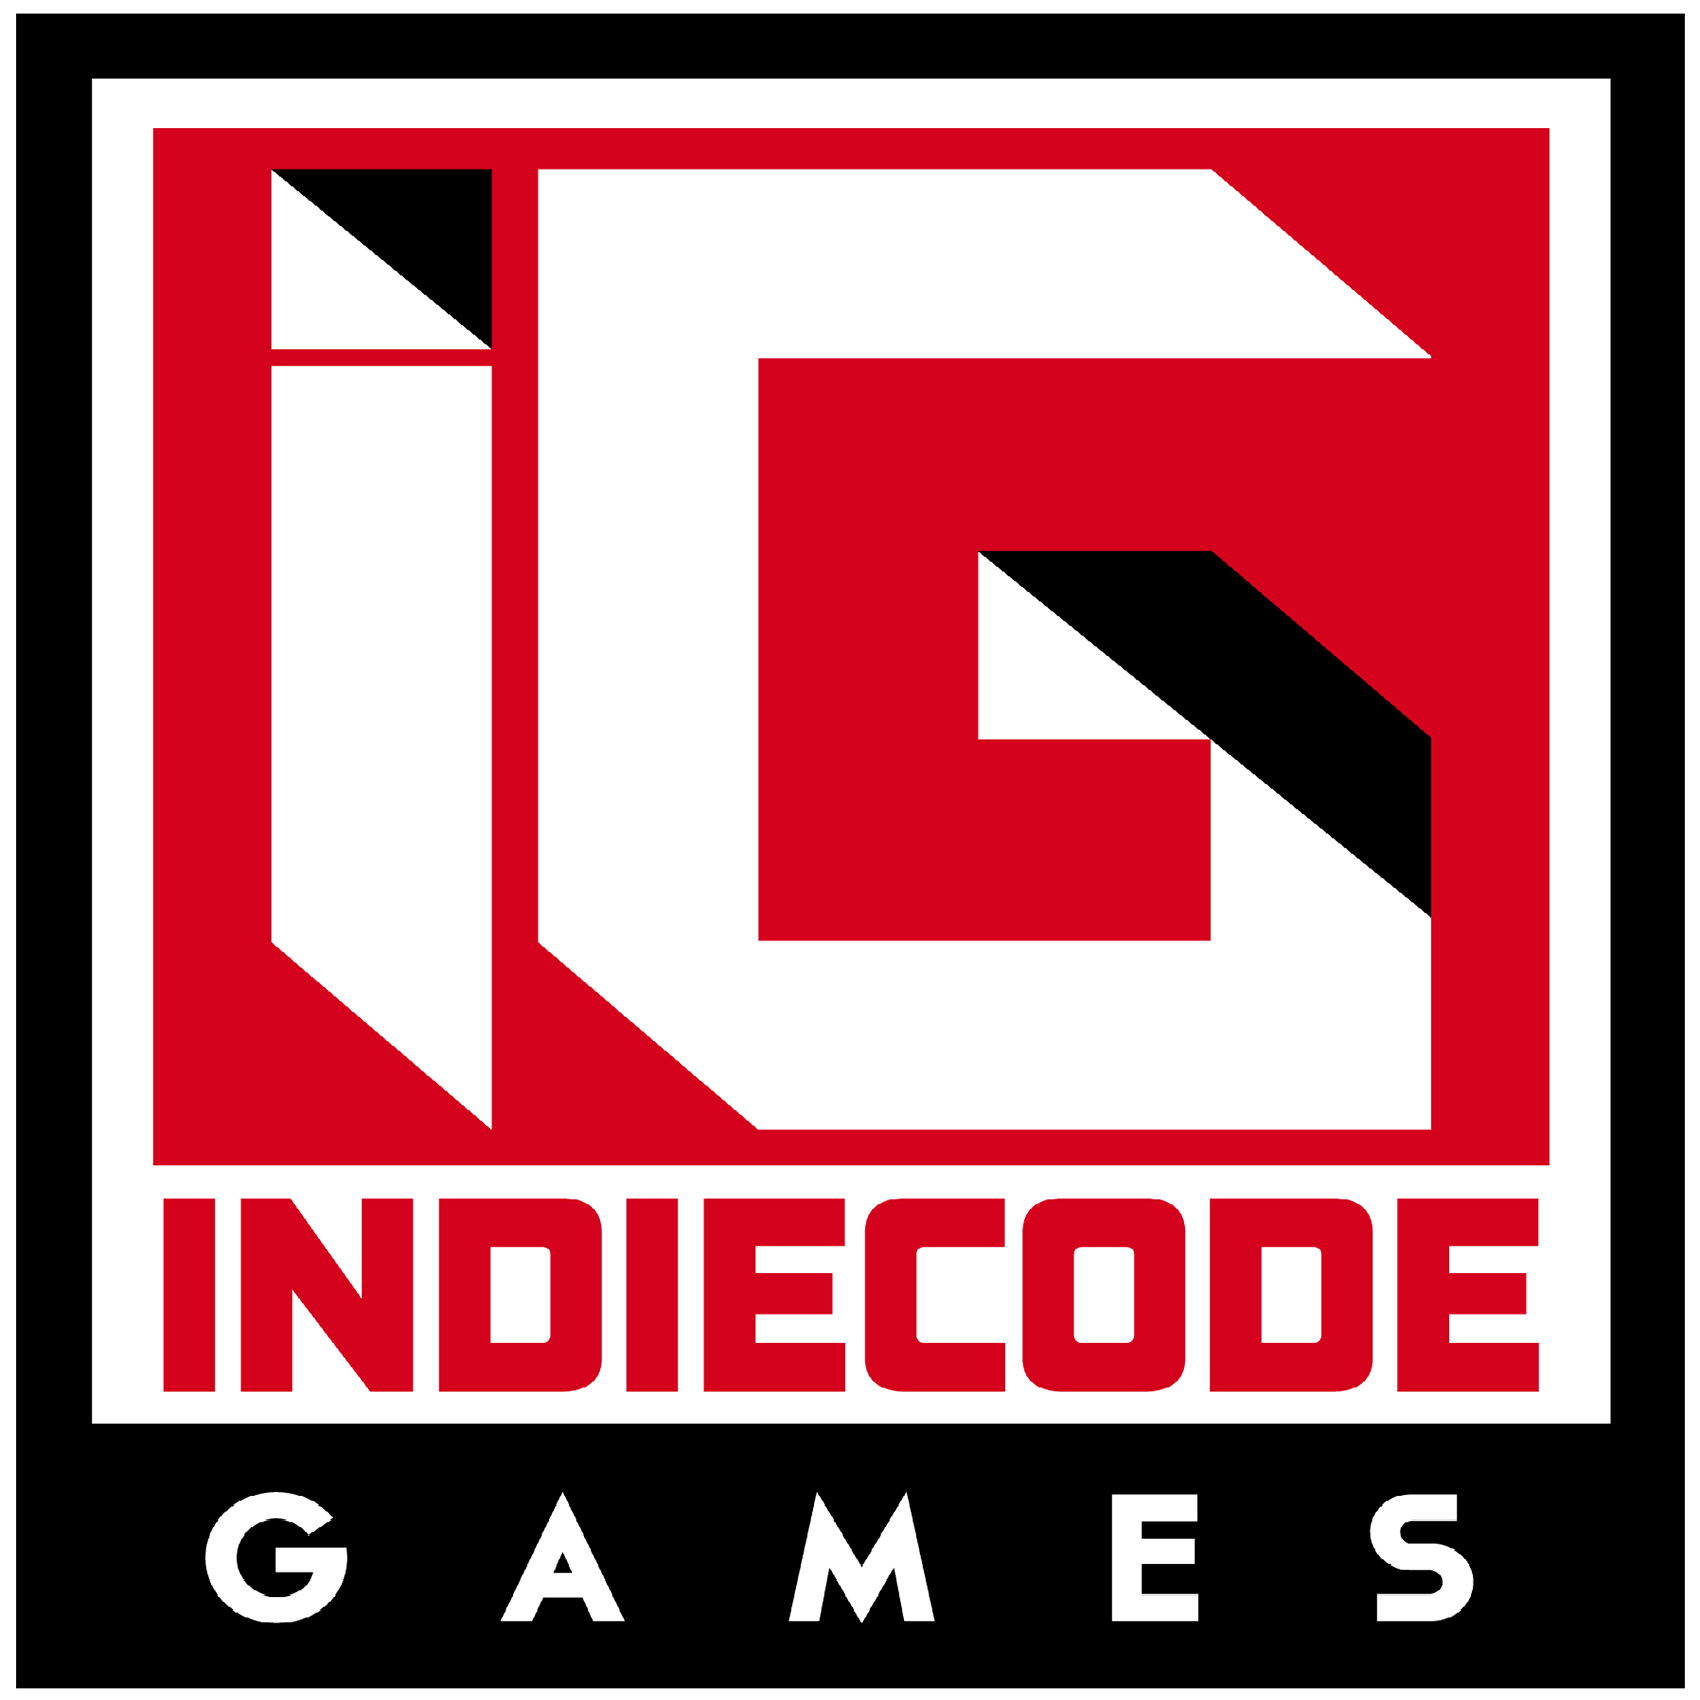 Indiecode Games